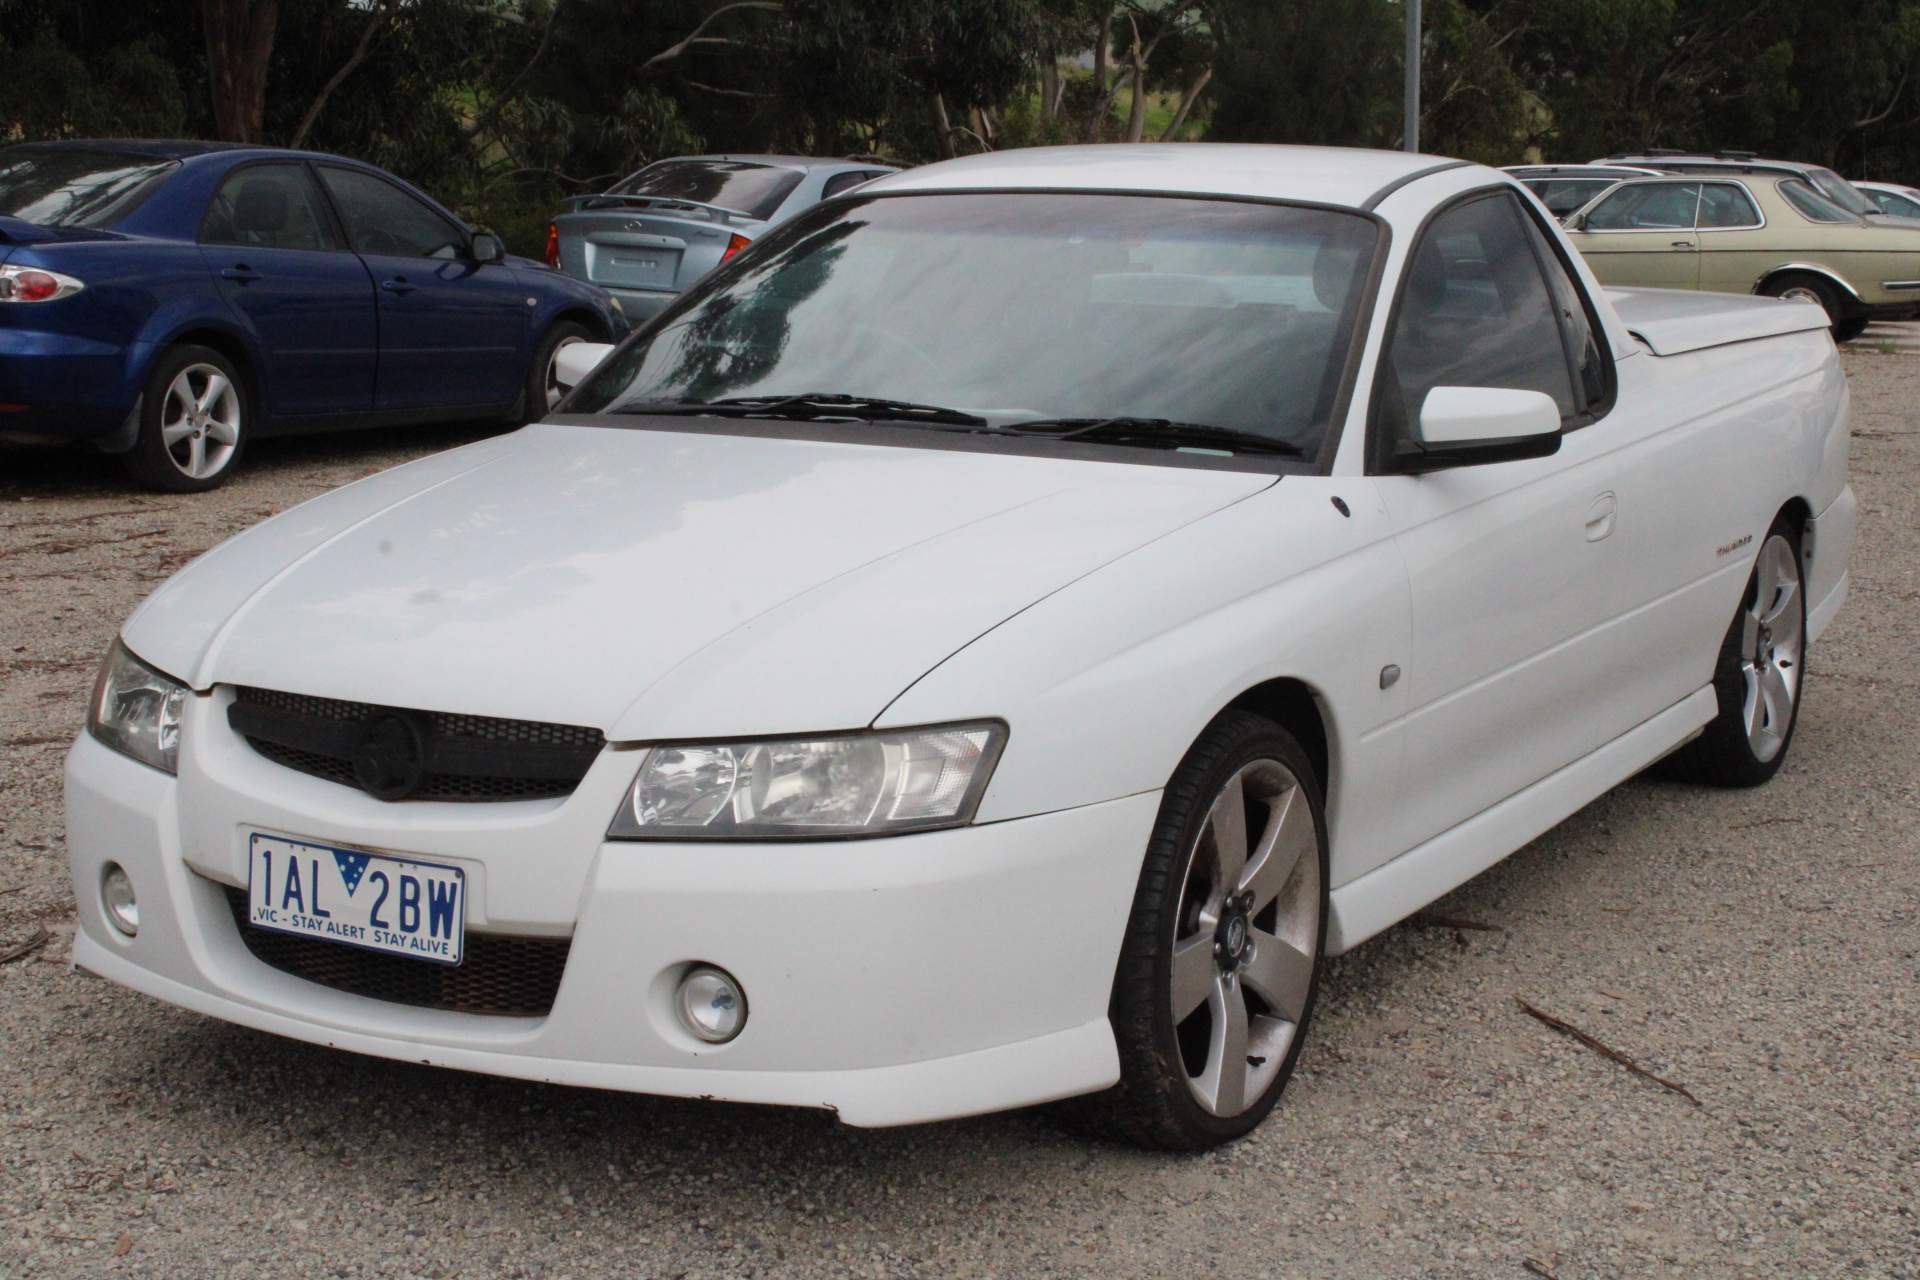 2006 Holden Commodore S THUNDER VZ Automatic Ute